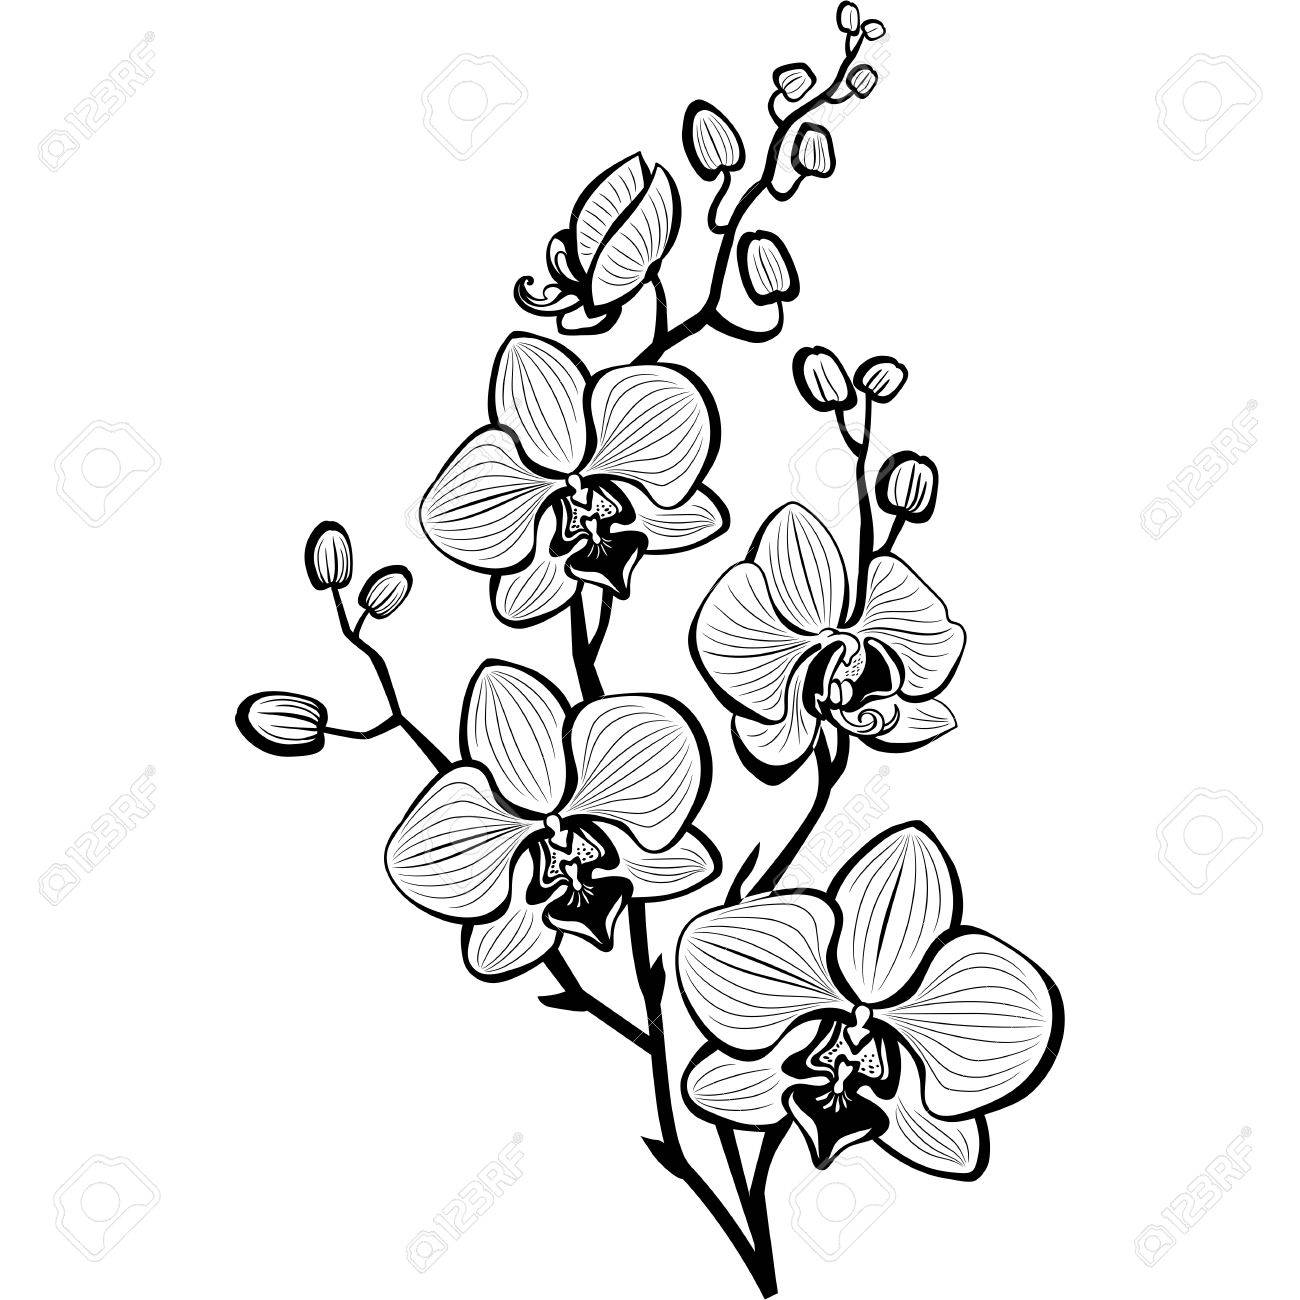 Orchid Flower Clipart Black And White.